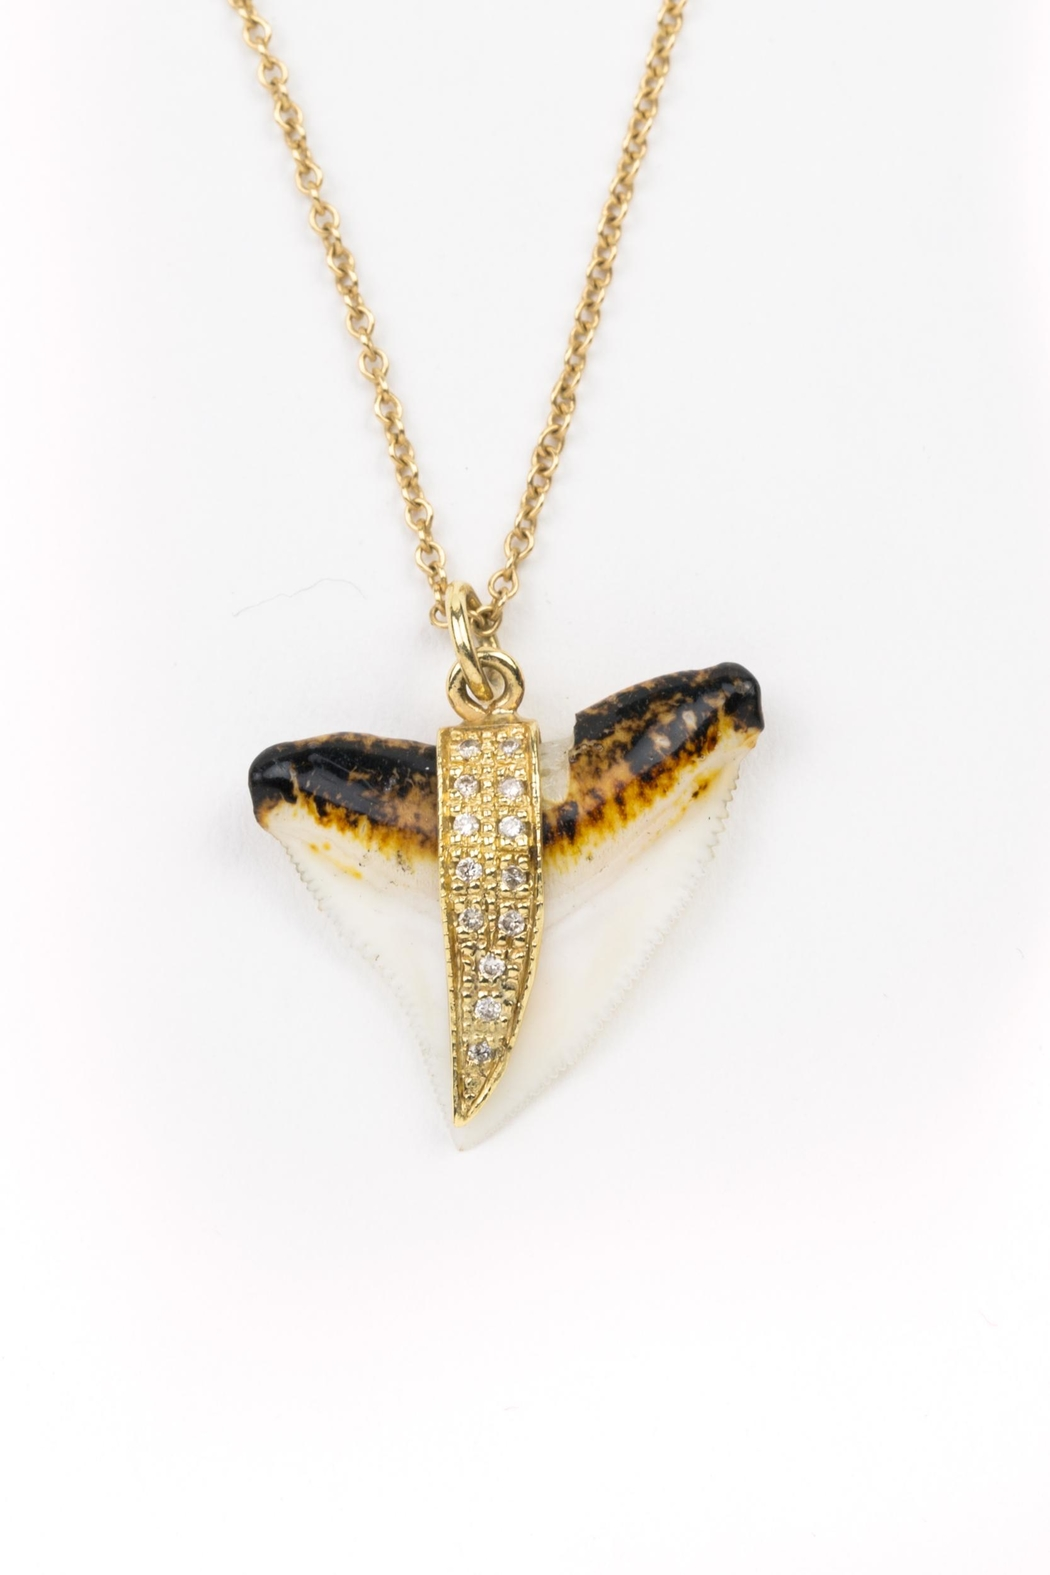 28c53cceb6 Jacquie Aiche Shark Tooth Necklace from Colorado by Slate Gray ...